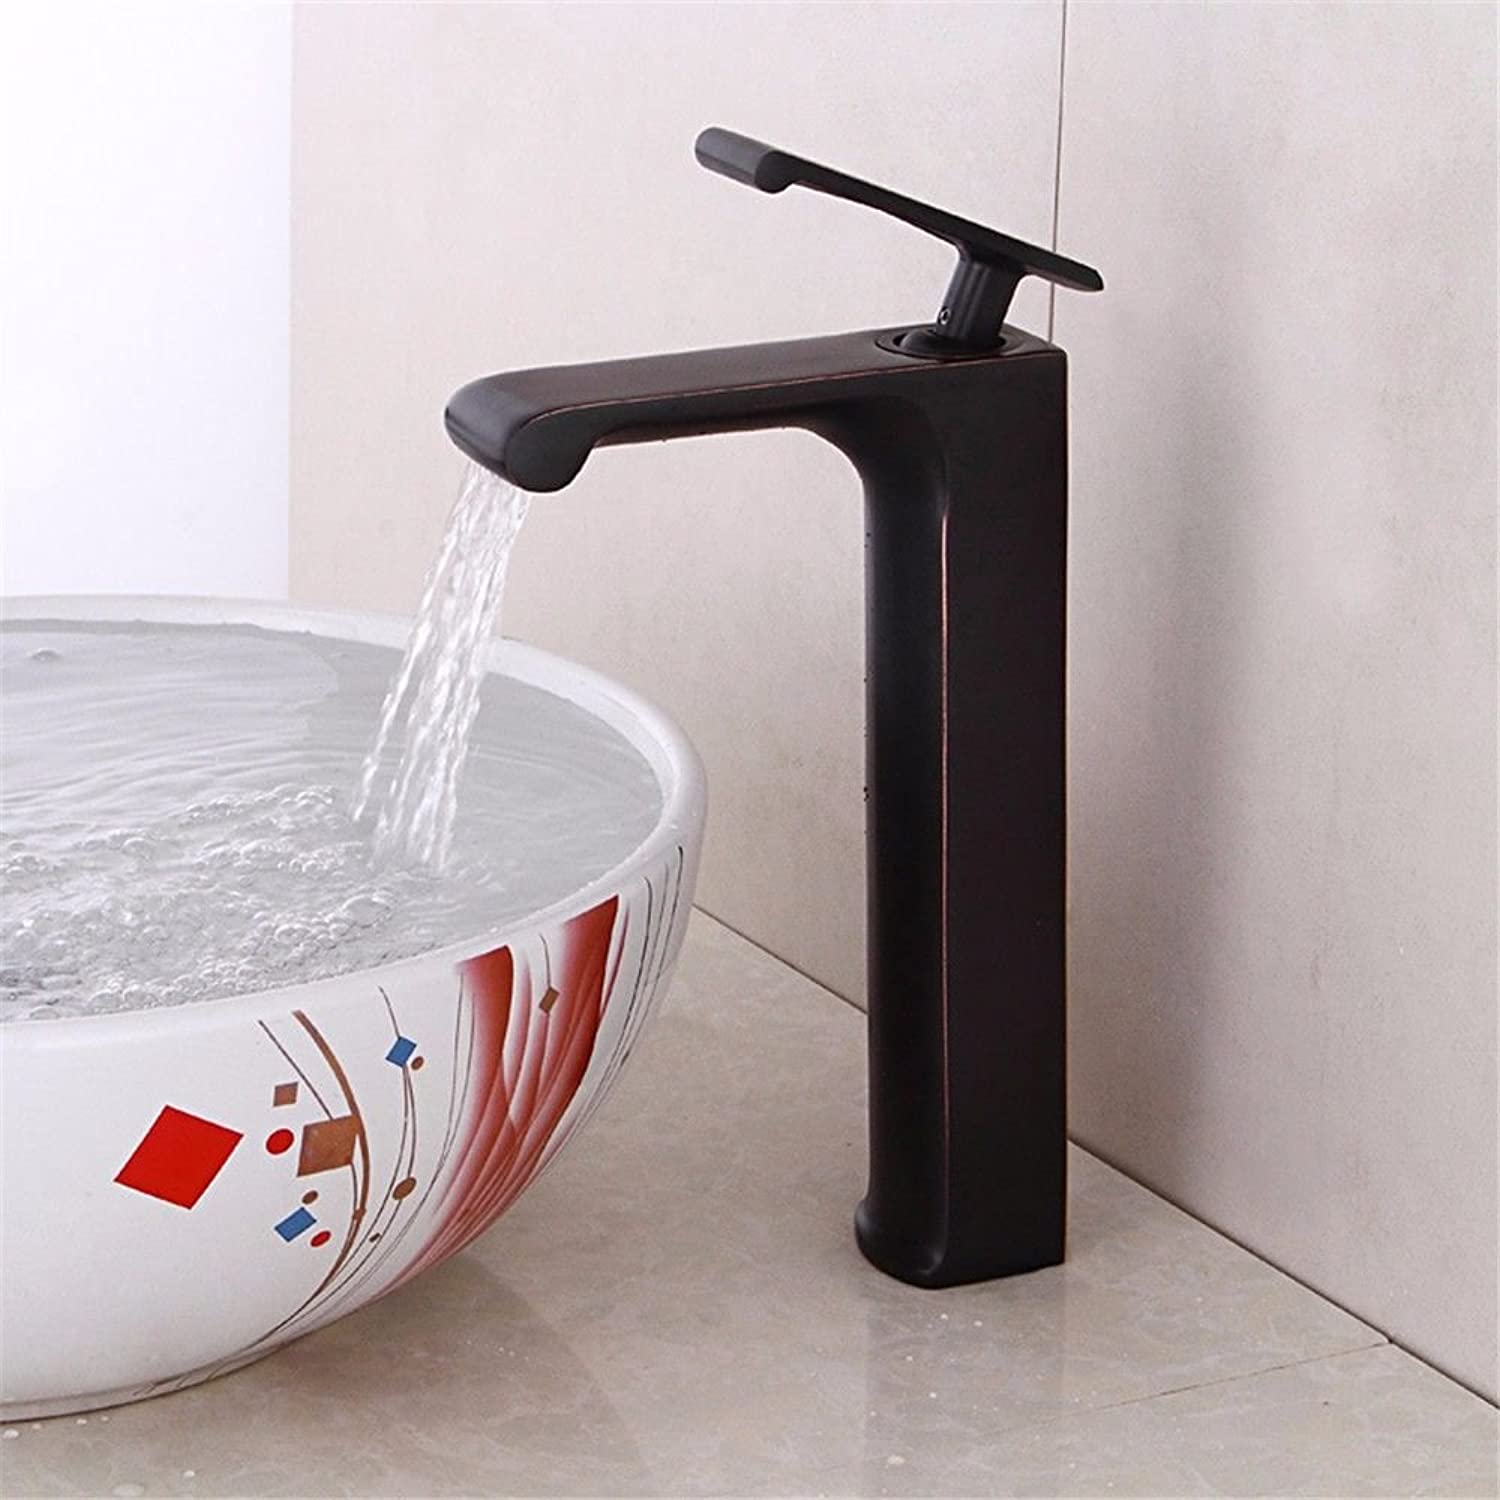 Pengei Tap Basin Mixer Kitchen Sink Mixer Faucet Black Bronze Stage Basin Hand-Drawing